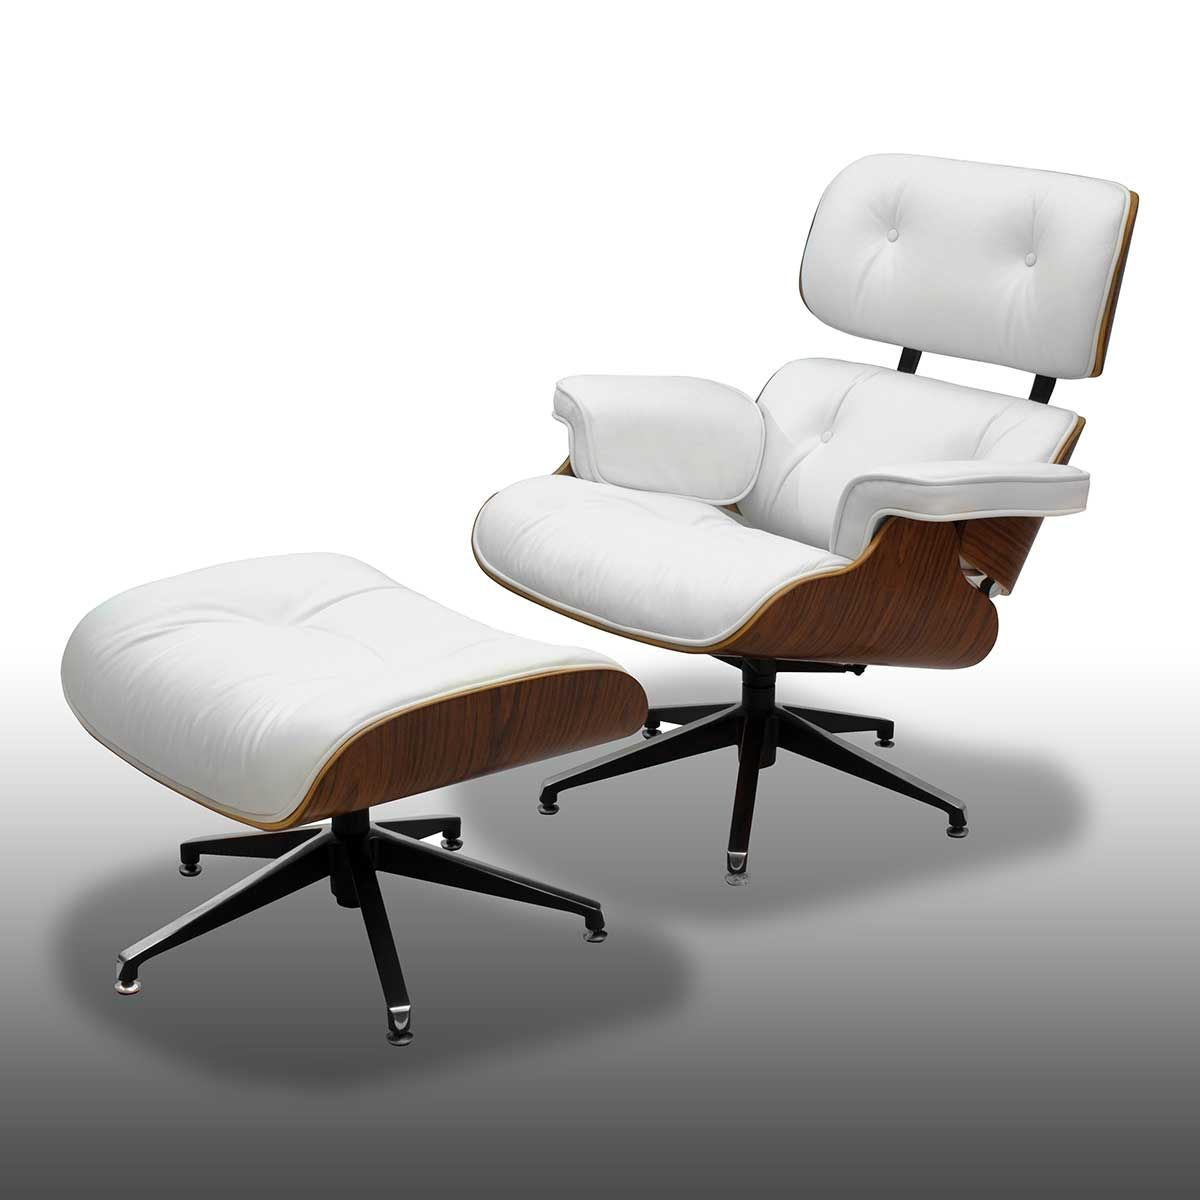 Charles Eames Lounge Chair Lounge Chair And Ottoman Charles Eames Herman Miller